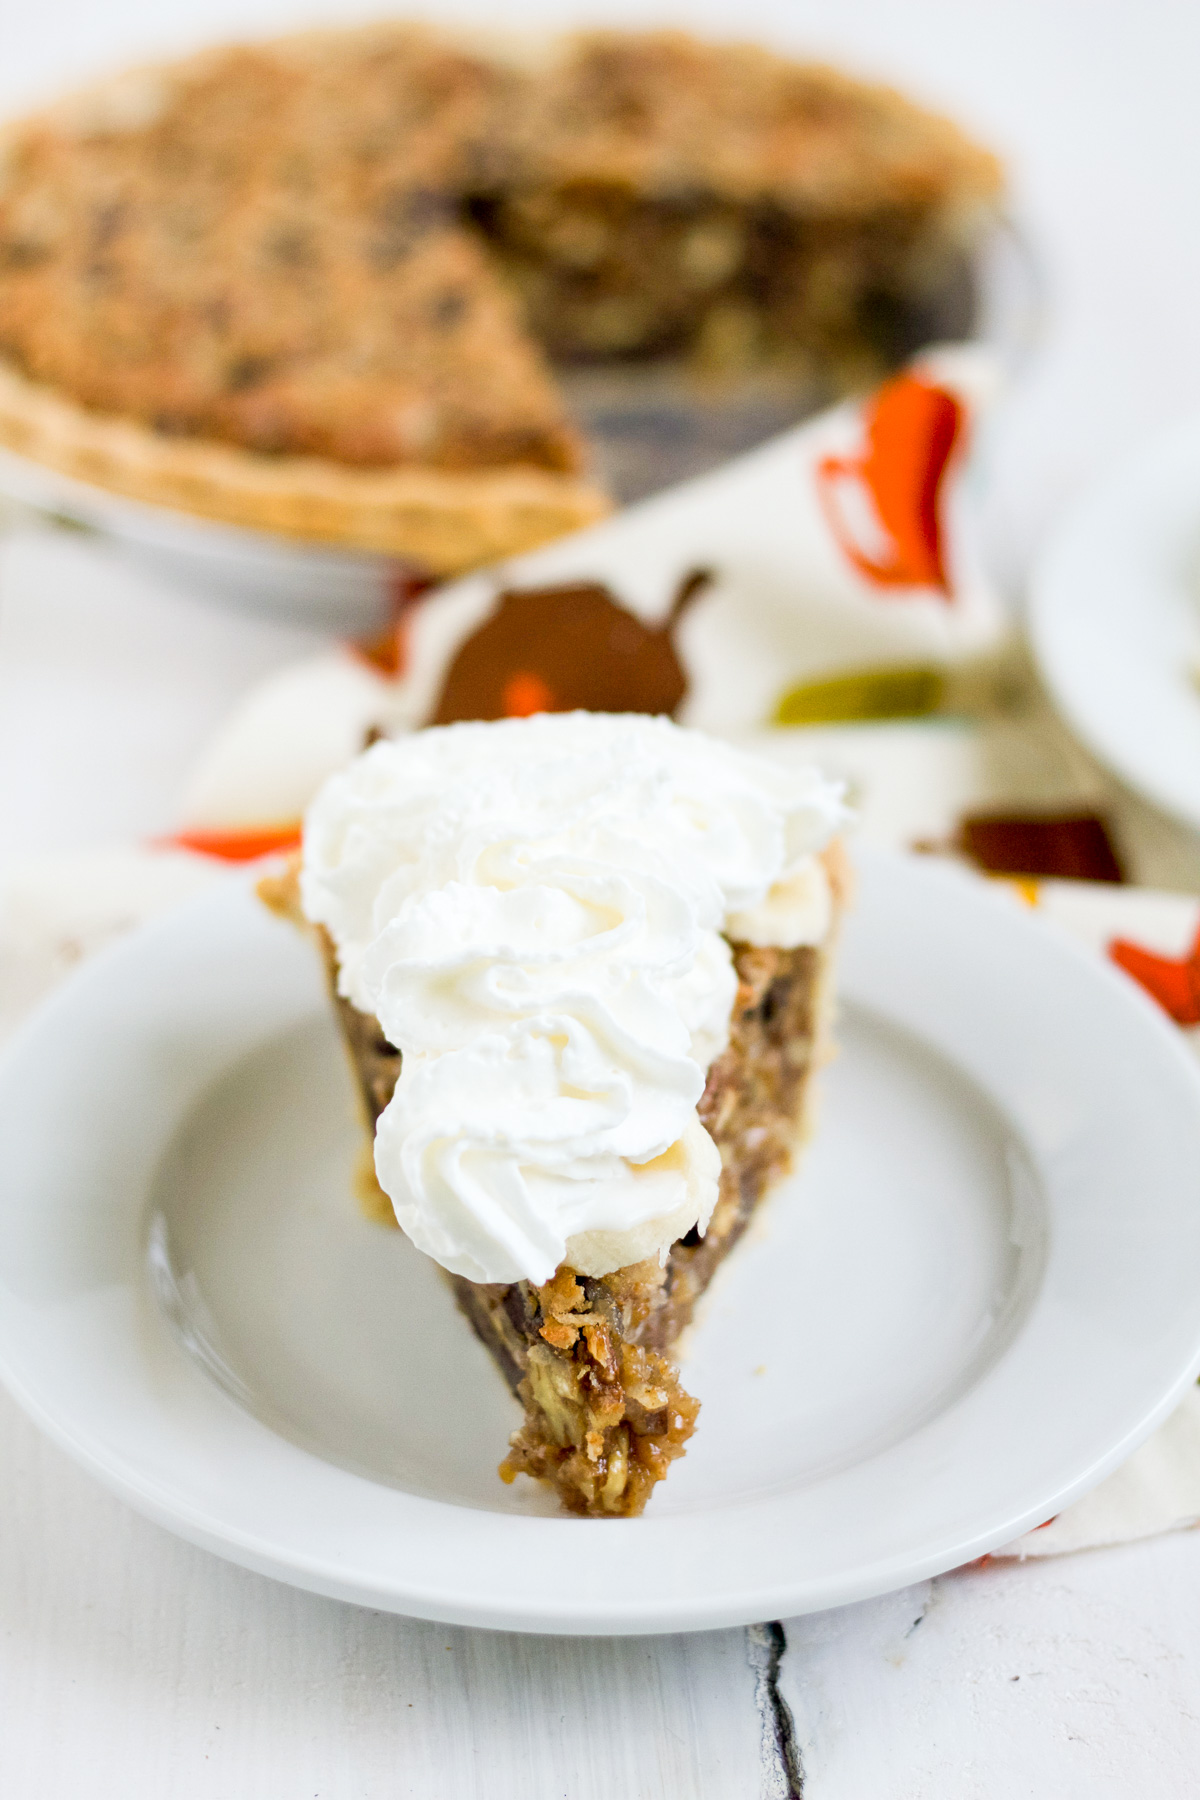 Coconut, chocolate chips, pecans, and graham crackers make this pie delicious!